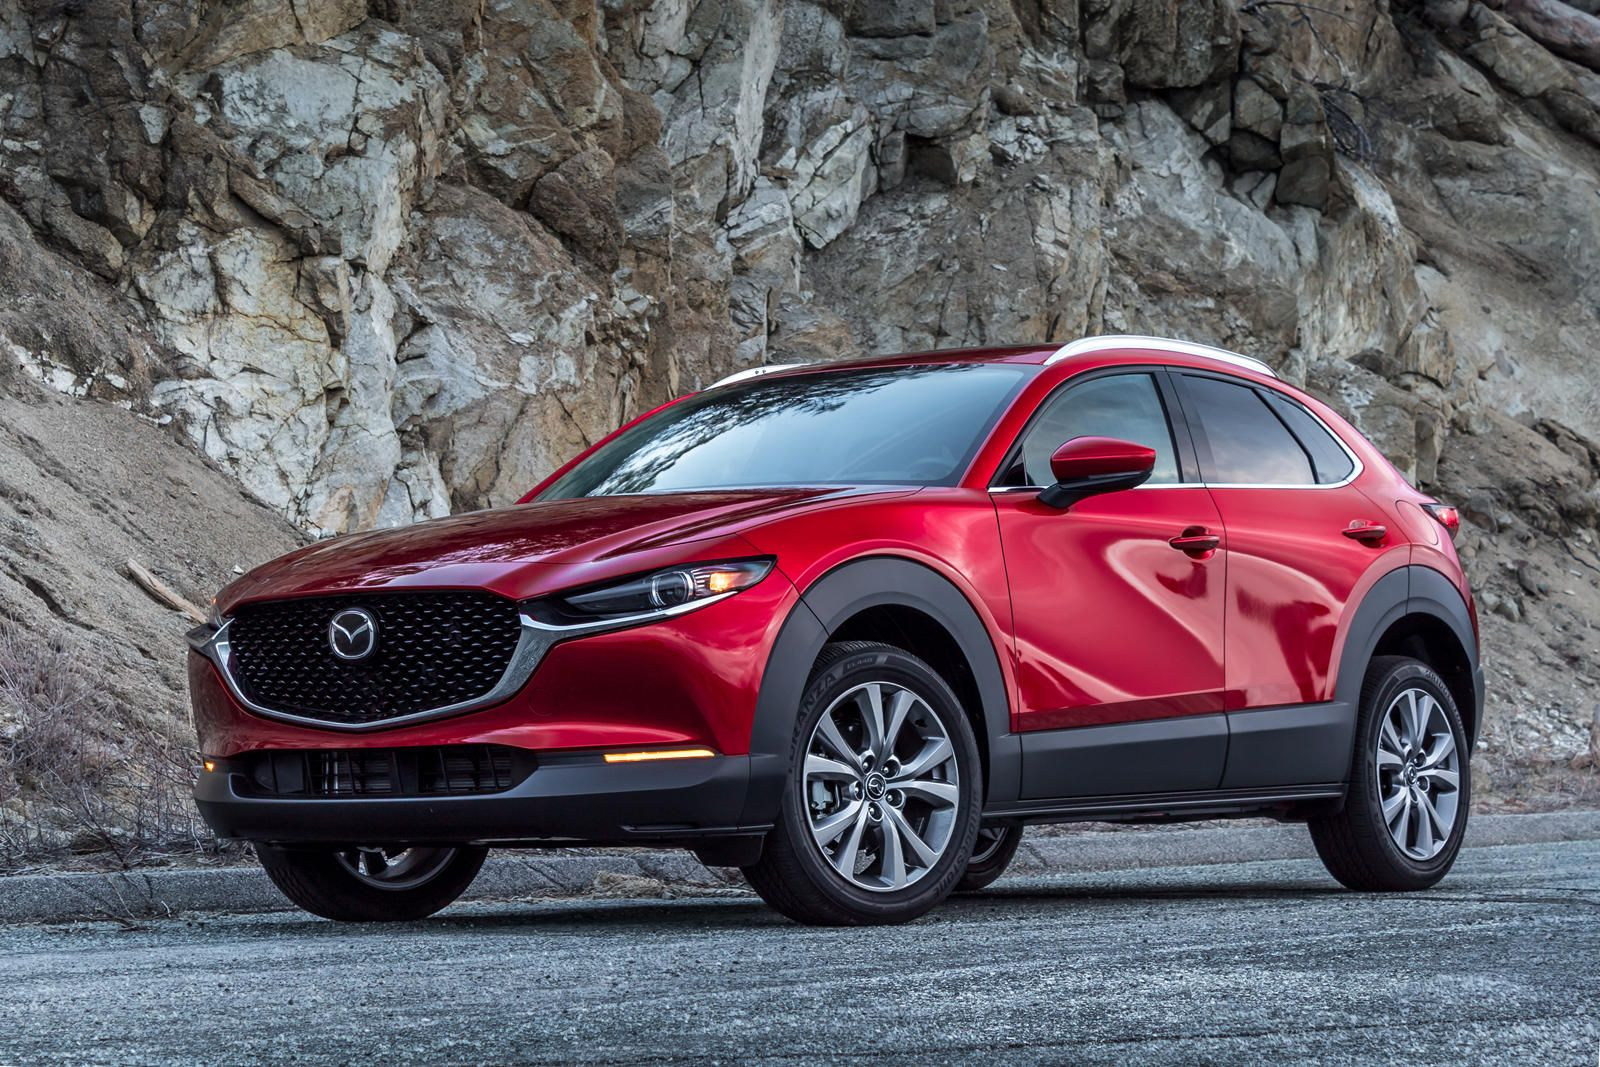 2020 Mazda Cx 30 Test Drive Review A More Practical And Stylish Cx 3 In 2020 Mazda Mazda Suv Geneva Motor Show